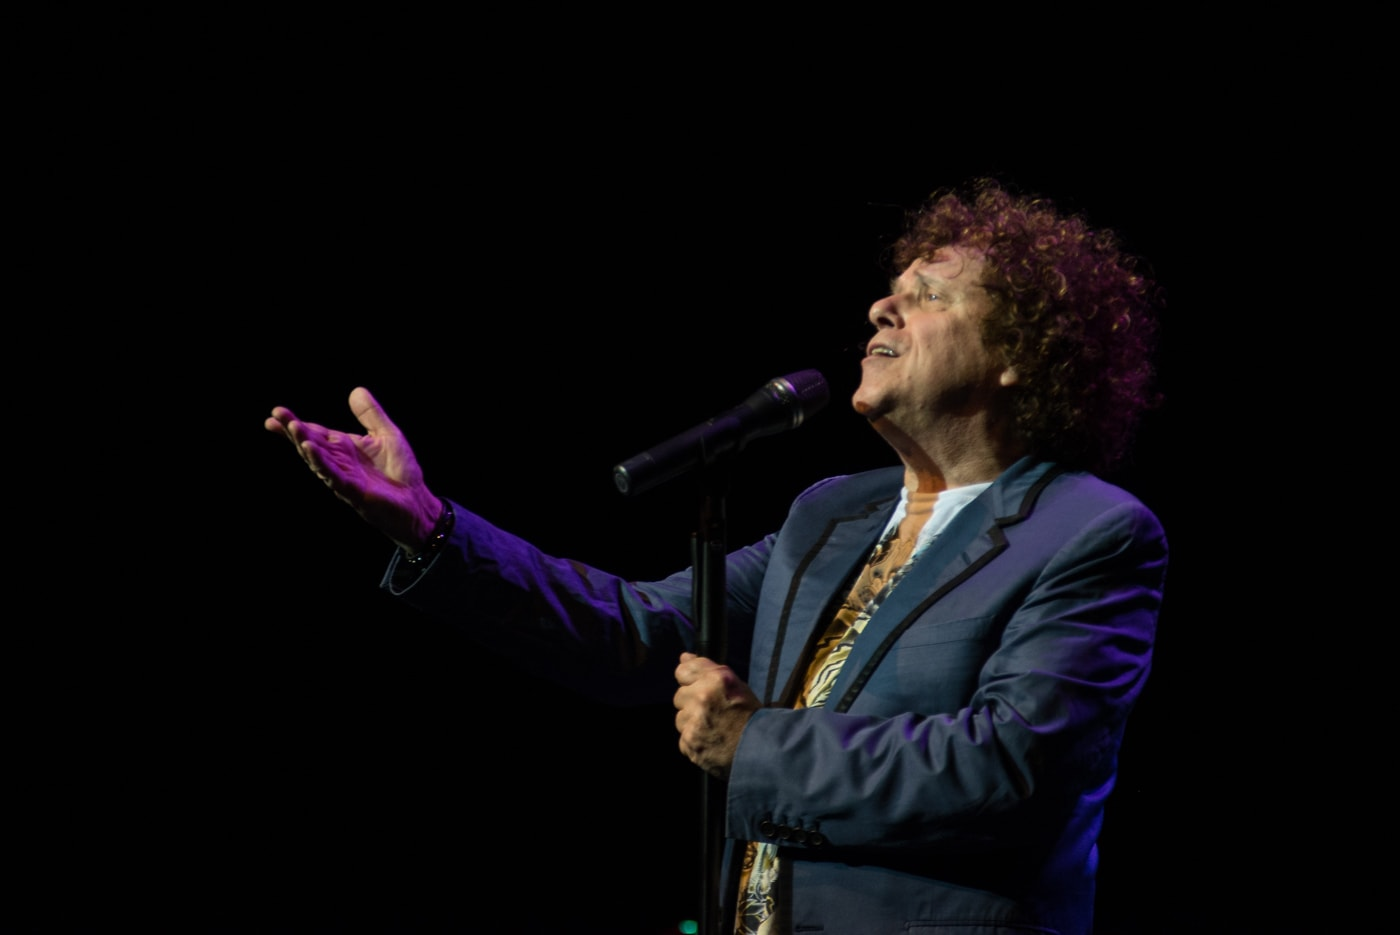 Leo Sayer at Bord Gais Energy Theatre by Sean Smyth (16-10-15) (61 of 129)